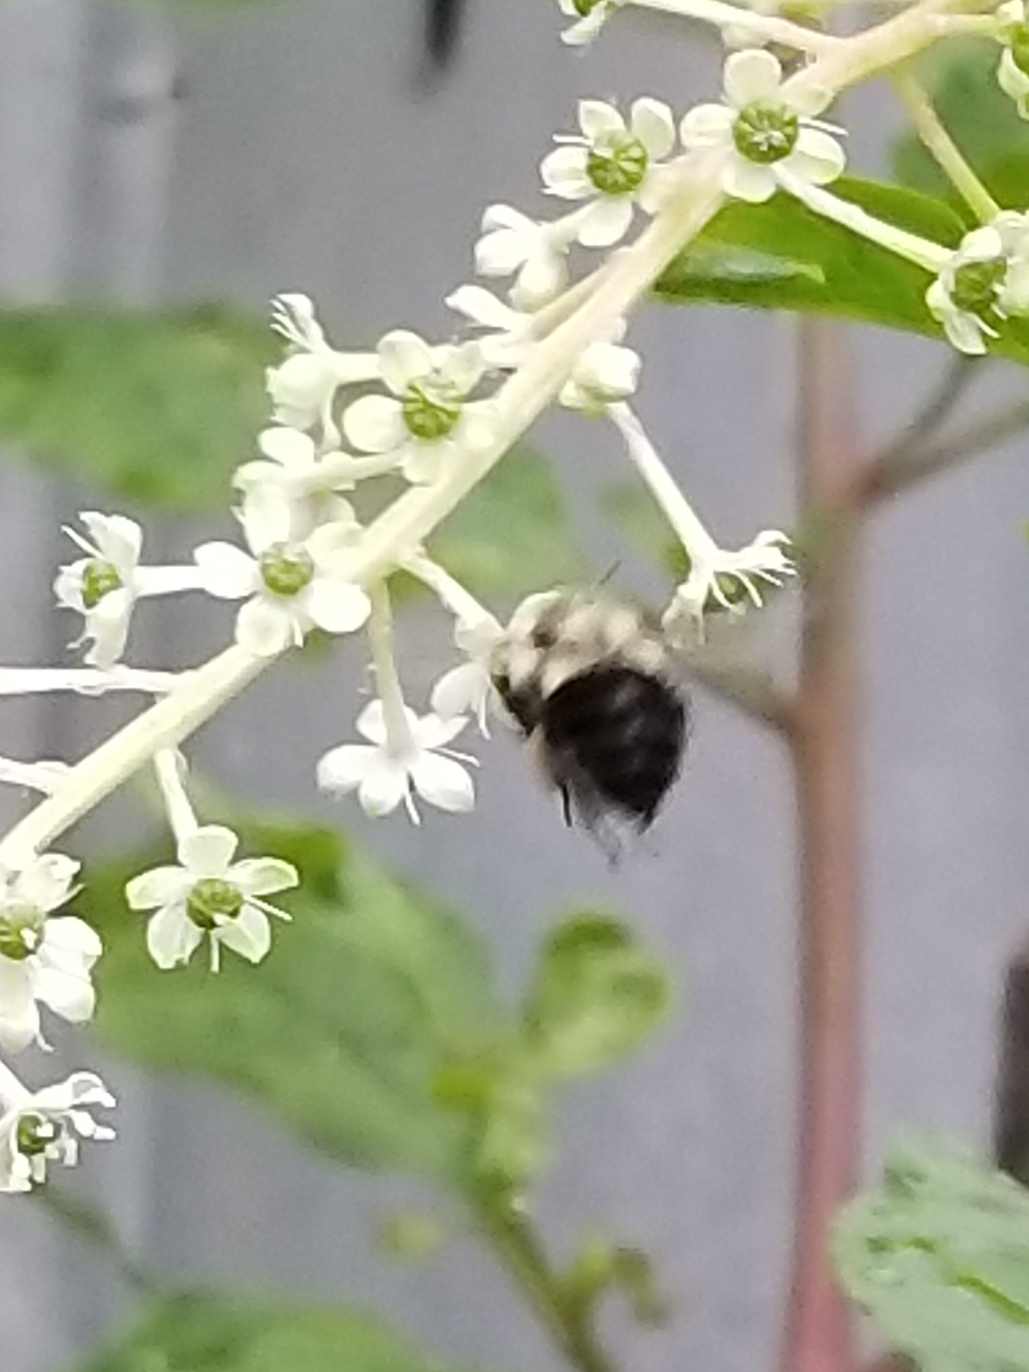 A picture of  Pokeweed  blossoms being pollinated.